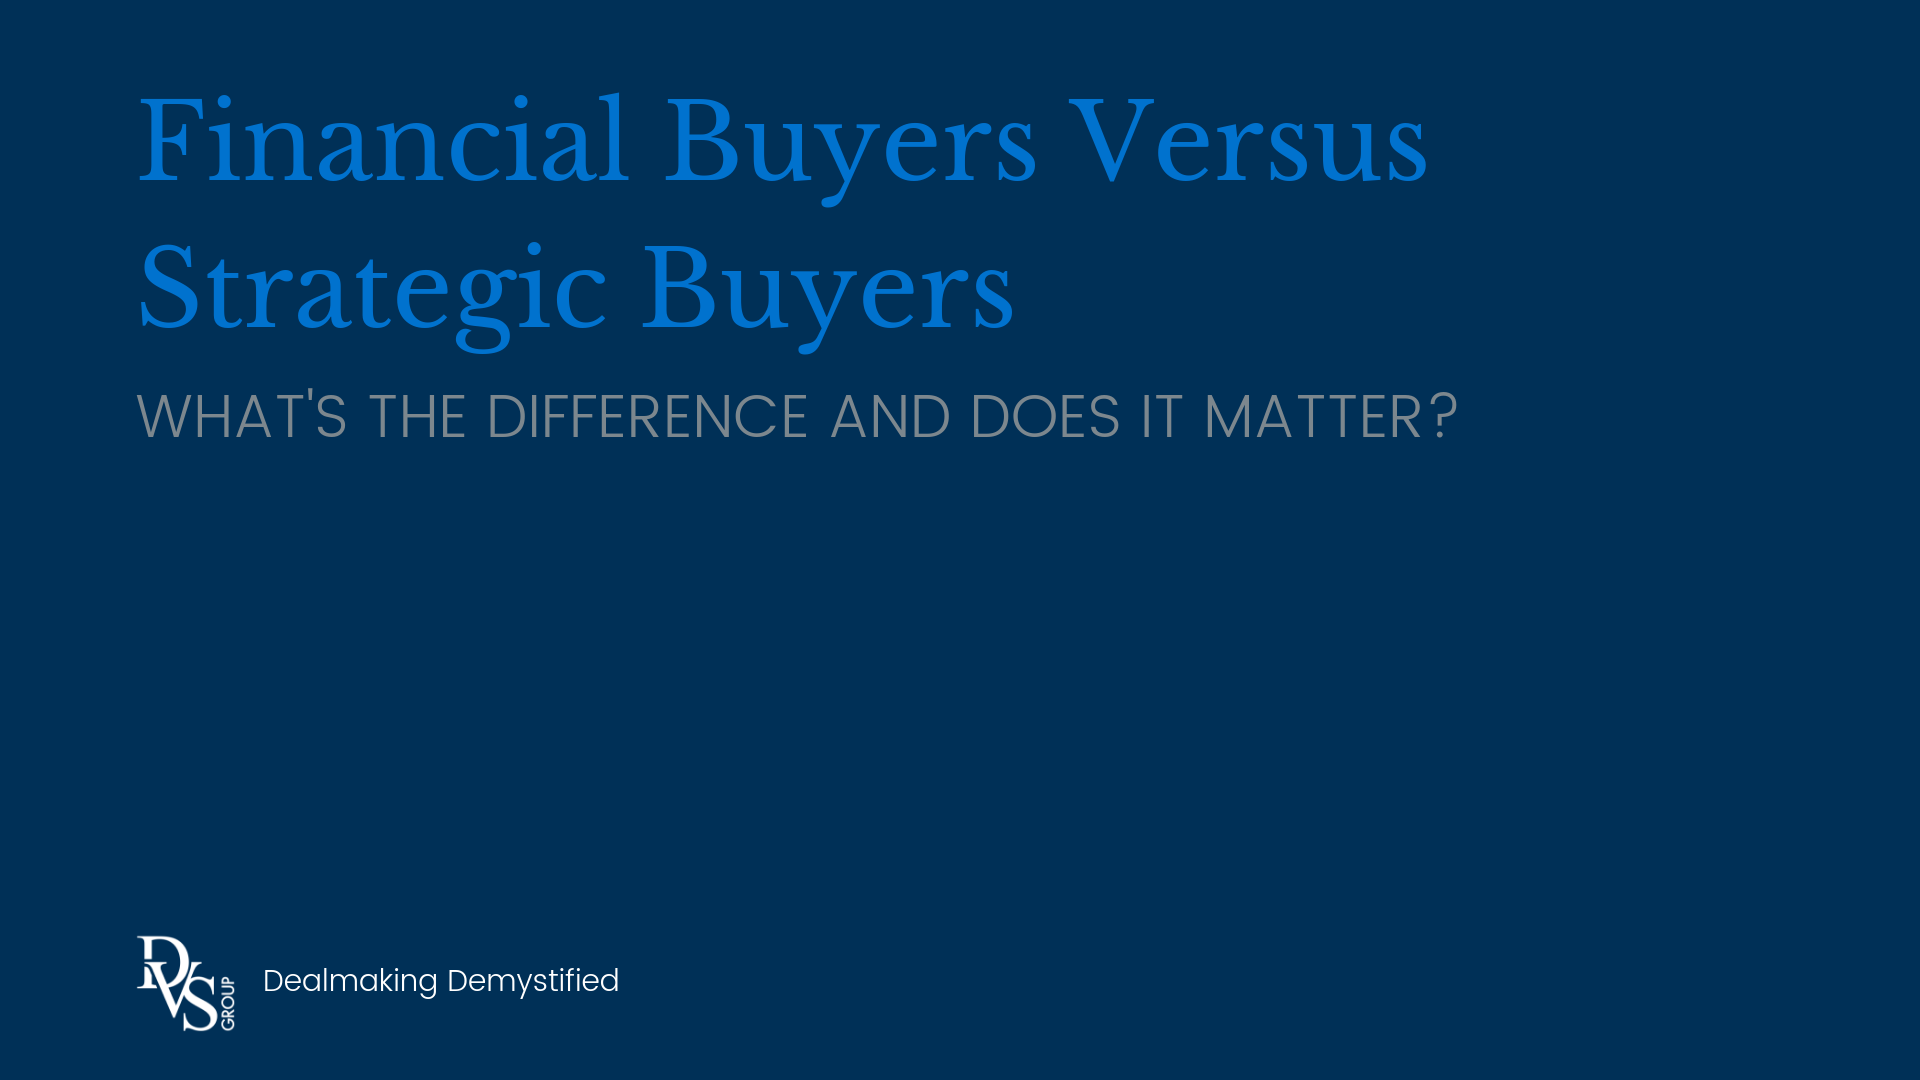 Title Image: Financial vs. Strategic Buyers